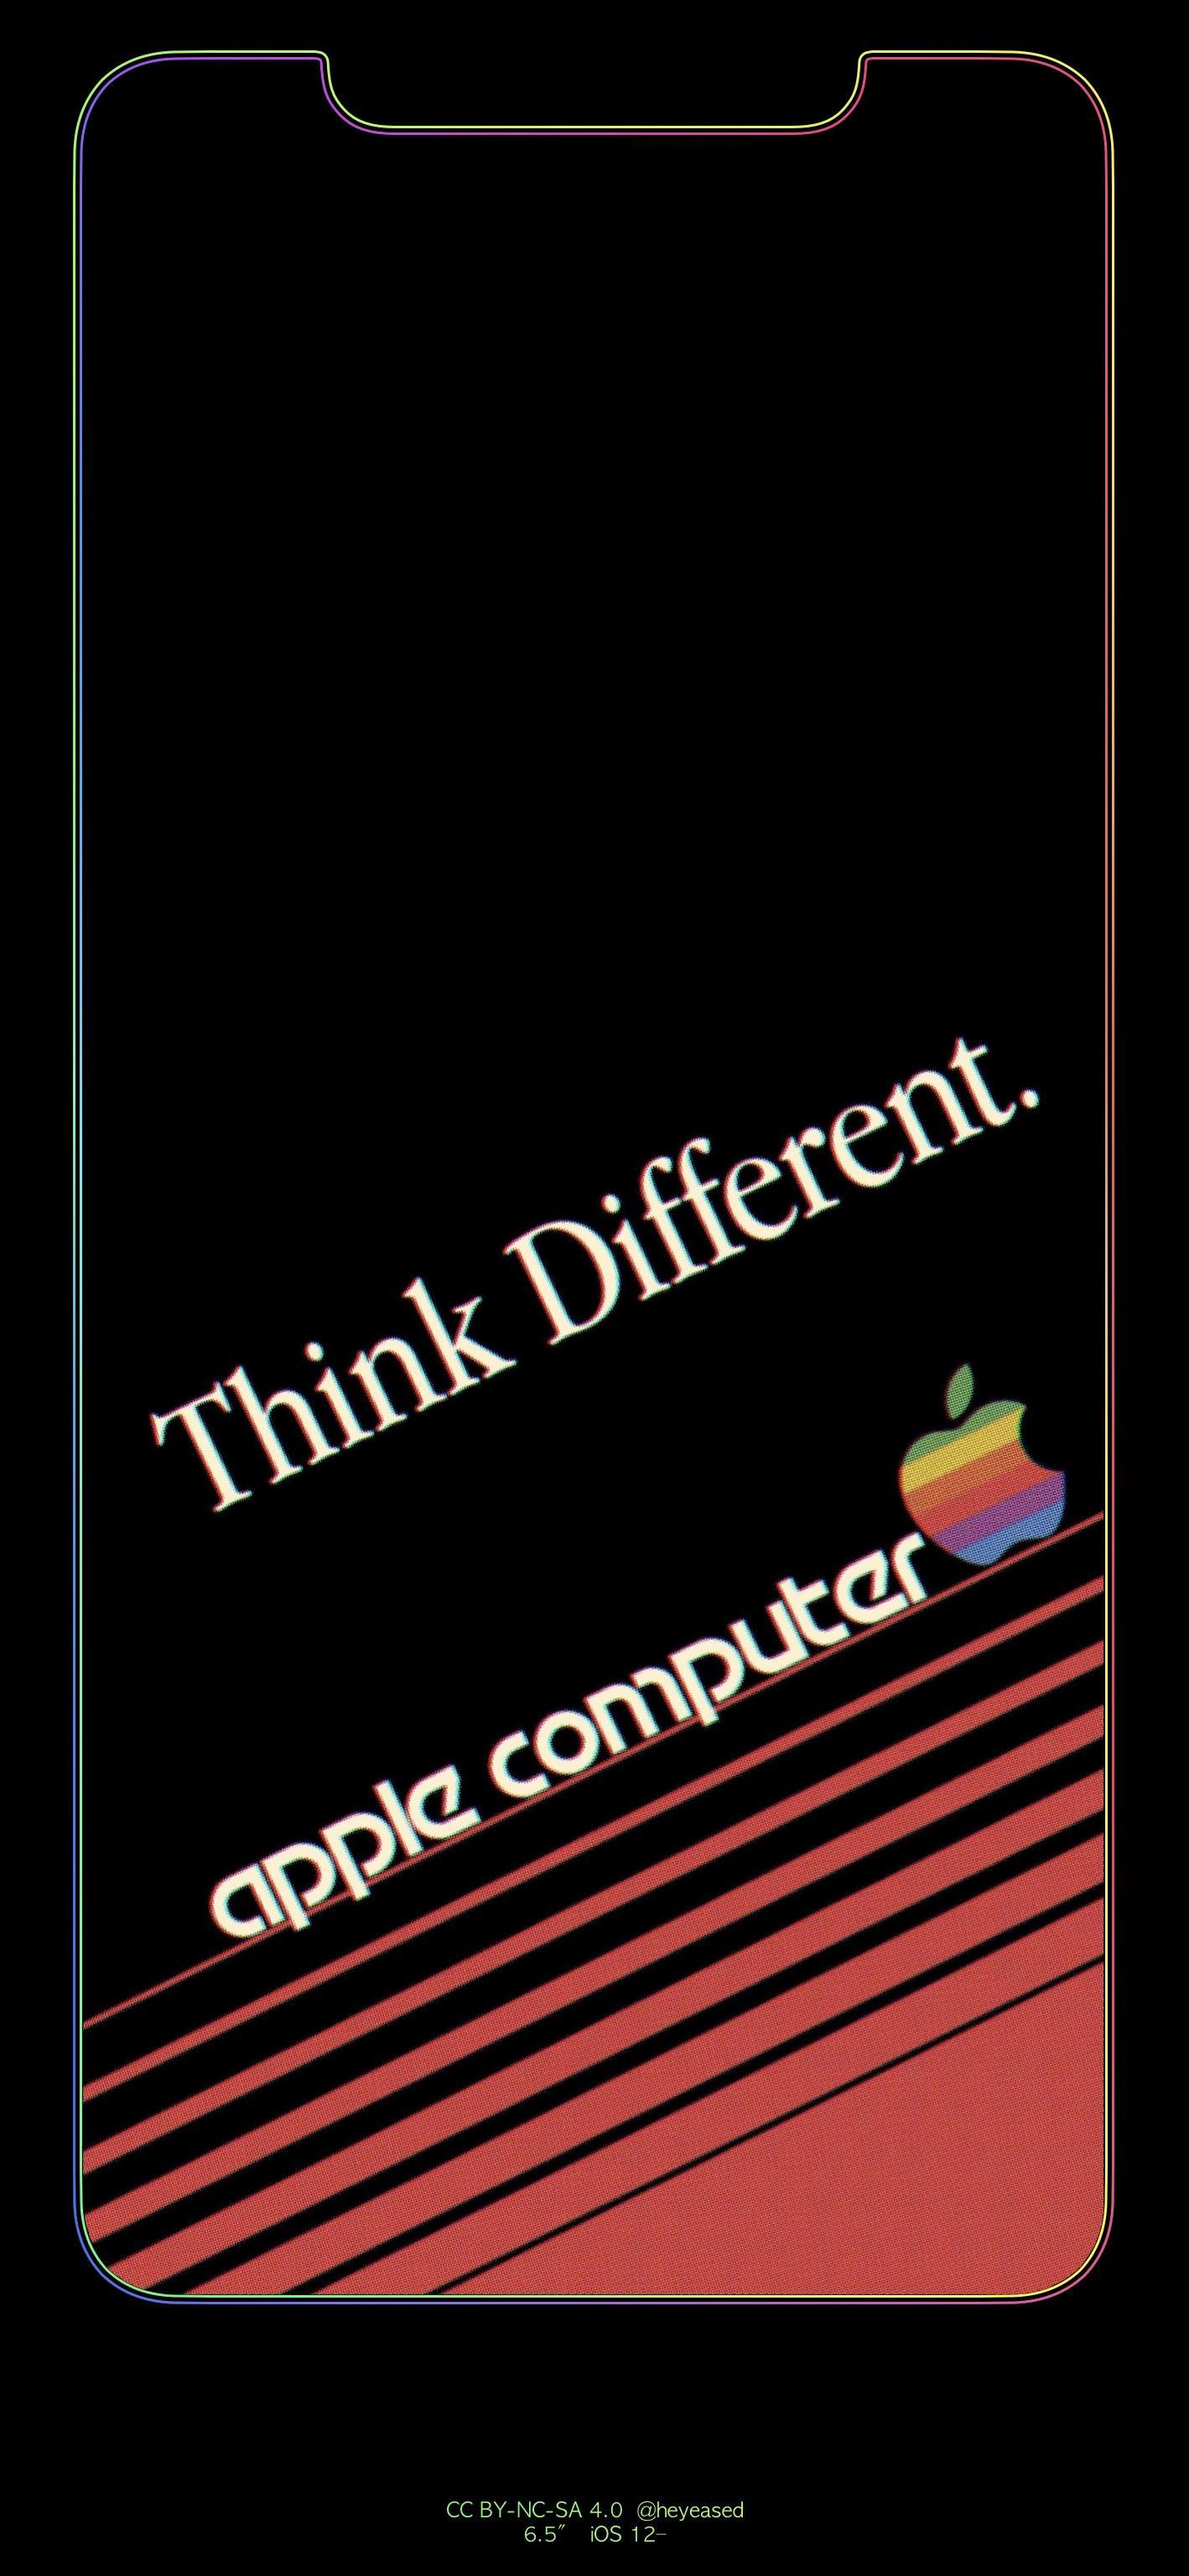 Retro Apple Computer border wallpapers for iPhone XS Max